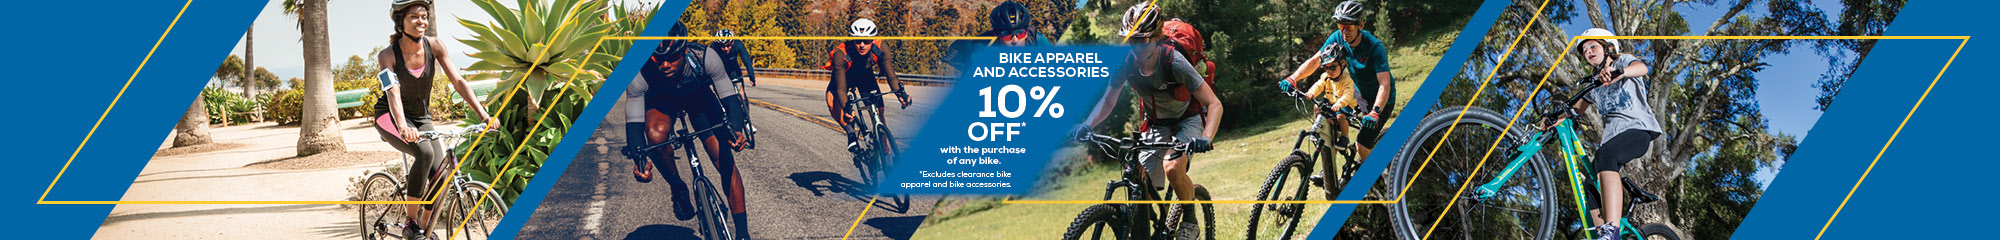 10% off cycling apparel and accessories with the purchase of any bike.  Excludes sale and clearance items.